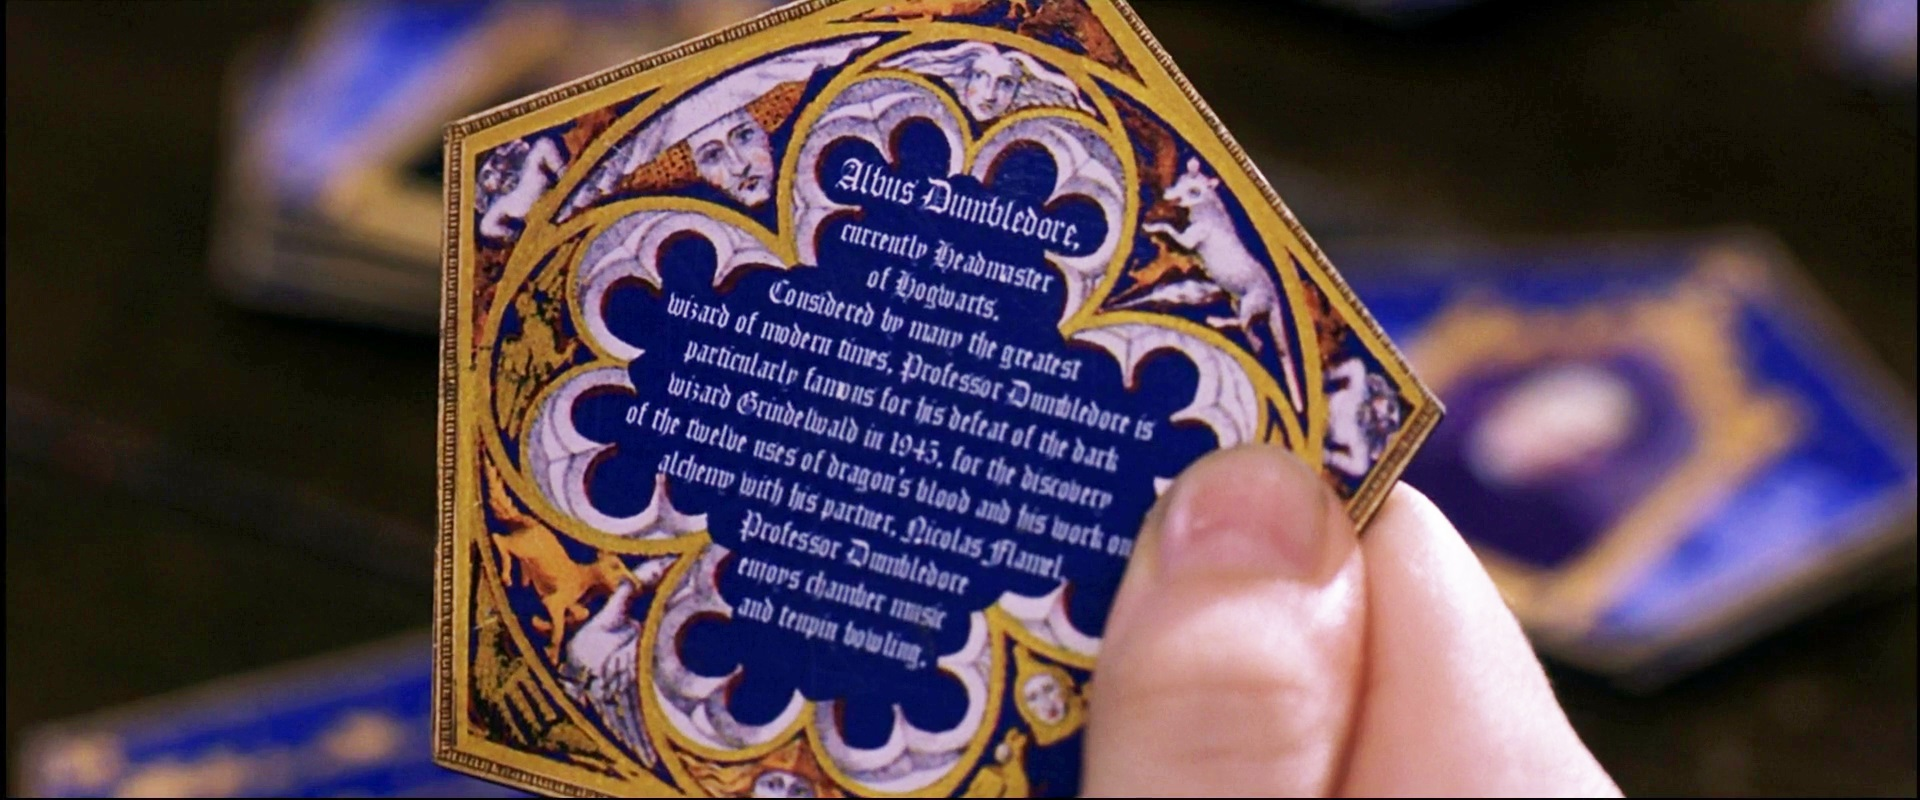 Biography of albus dumbledore on the back of his chocolate frog card